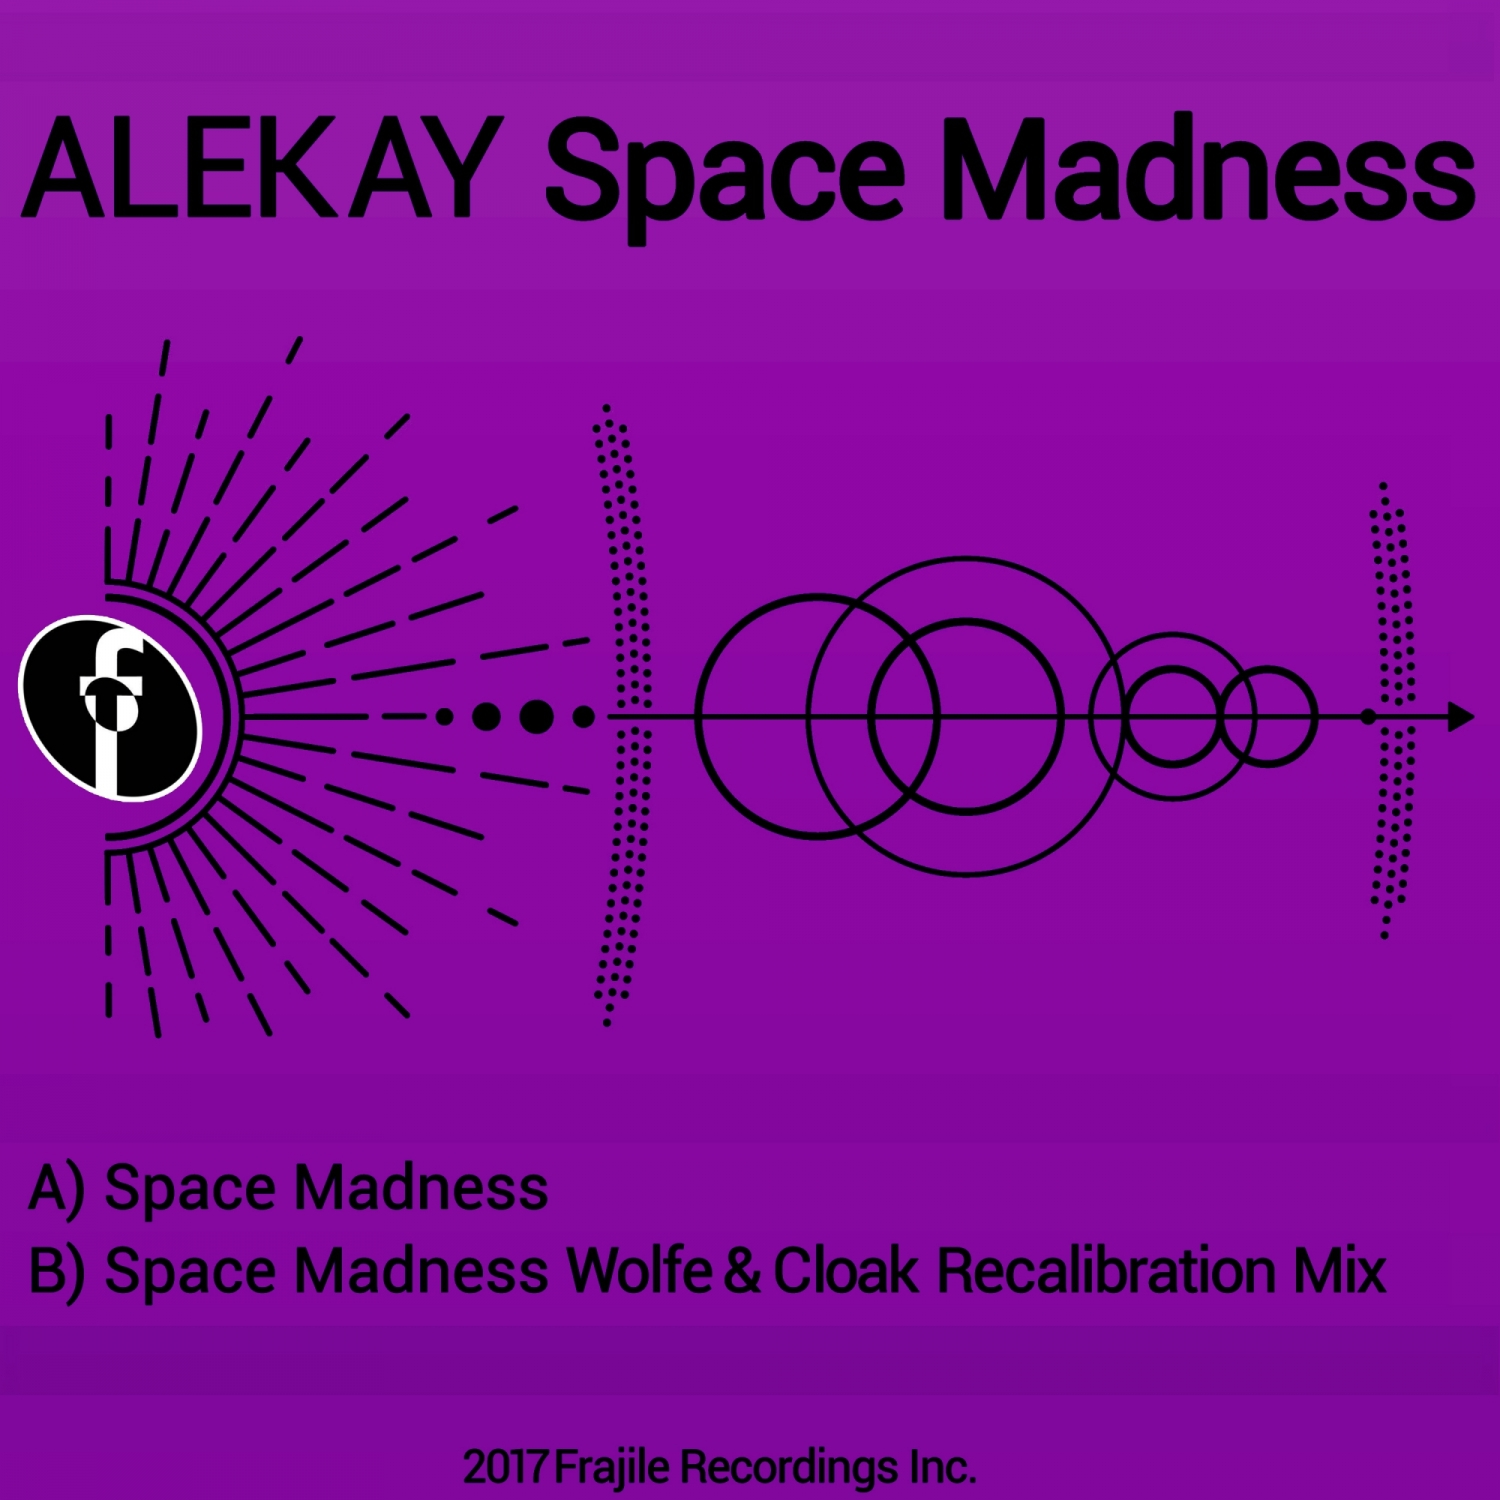 Alekay  - Space Madness (James Wolfe & Cloak Recalibration Mix) (James Wolfe & Cloak Recalibration Mix)